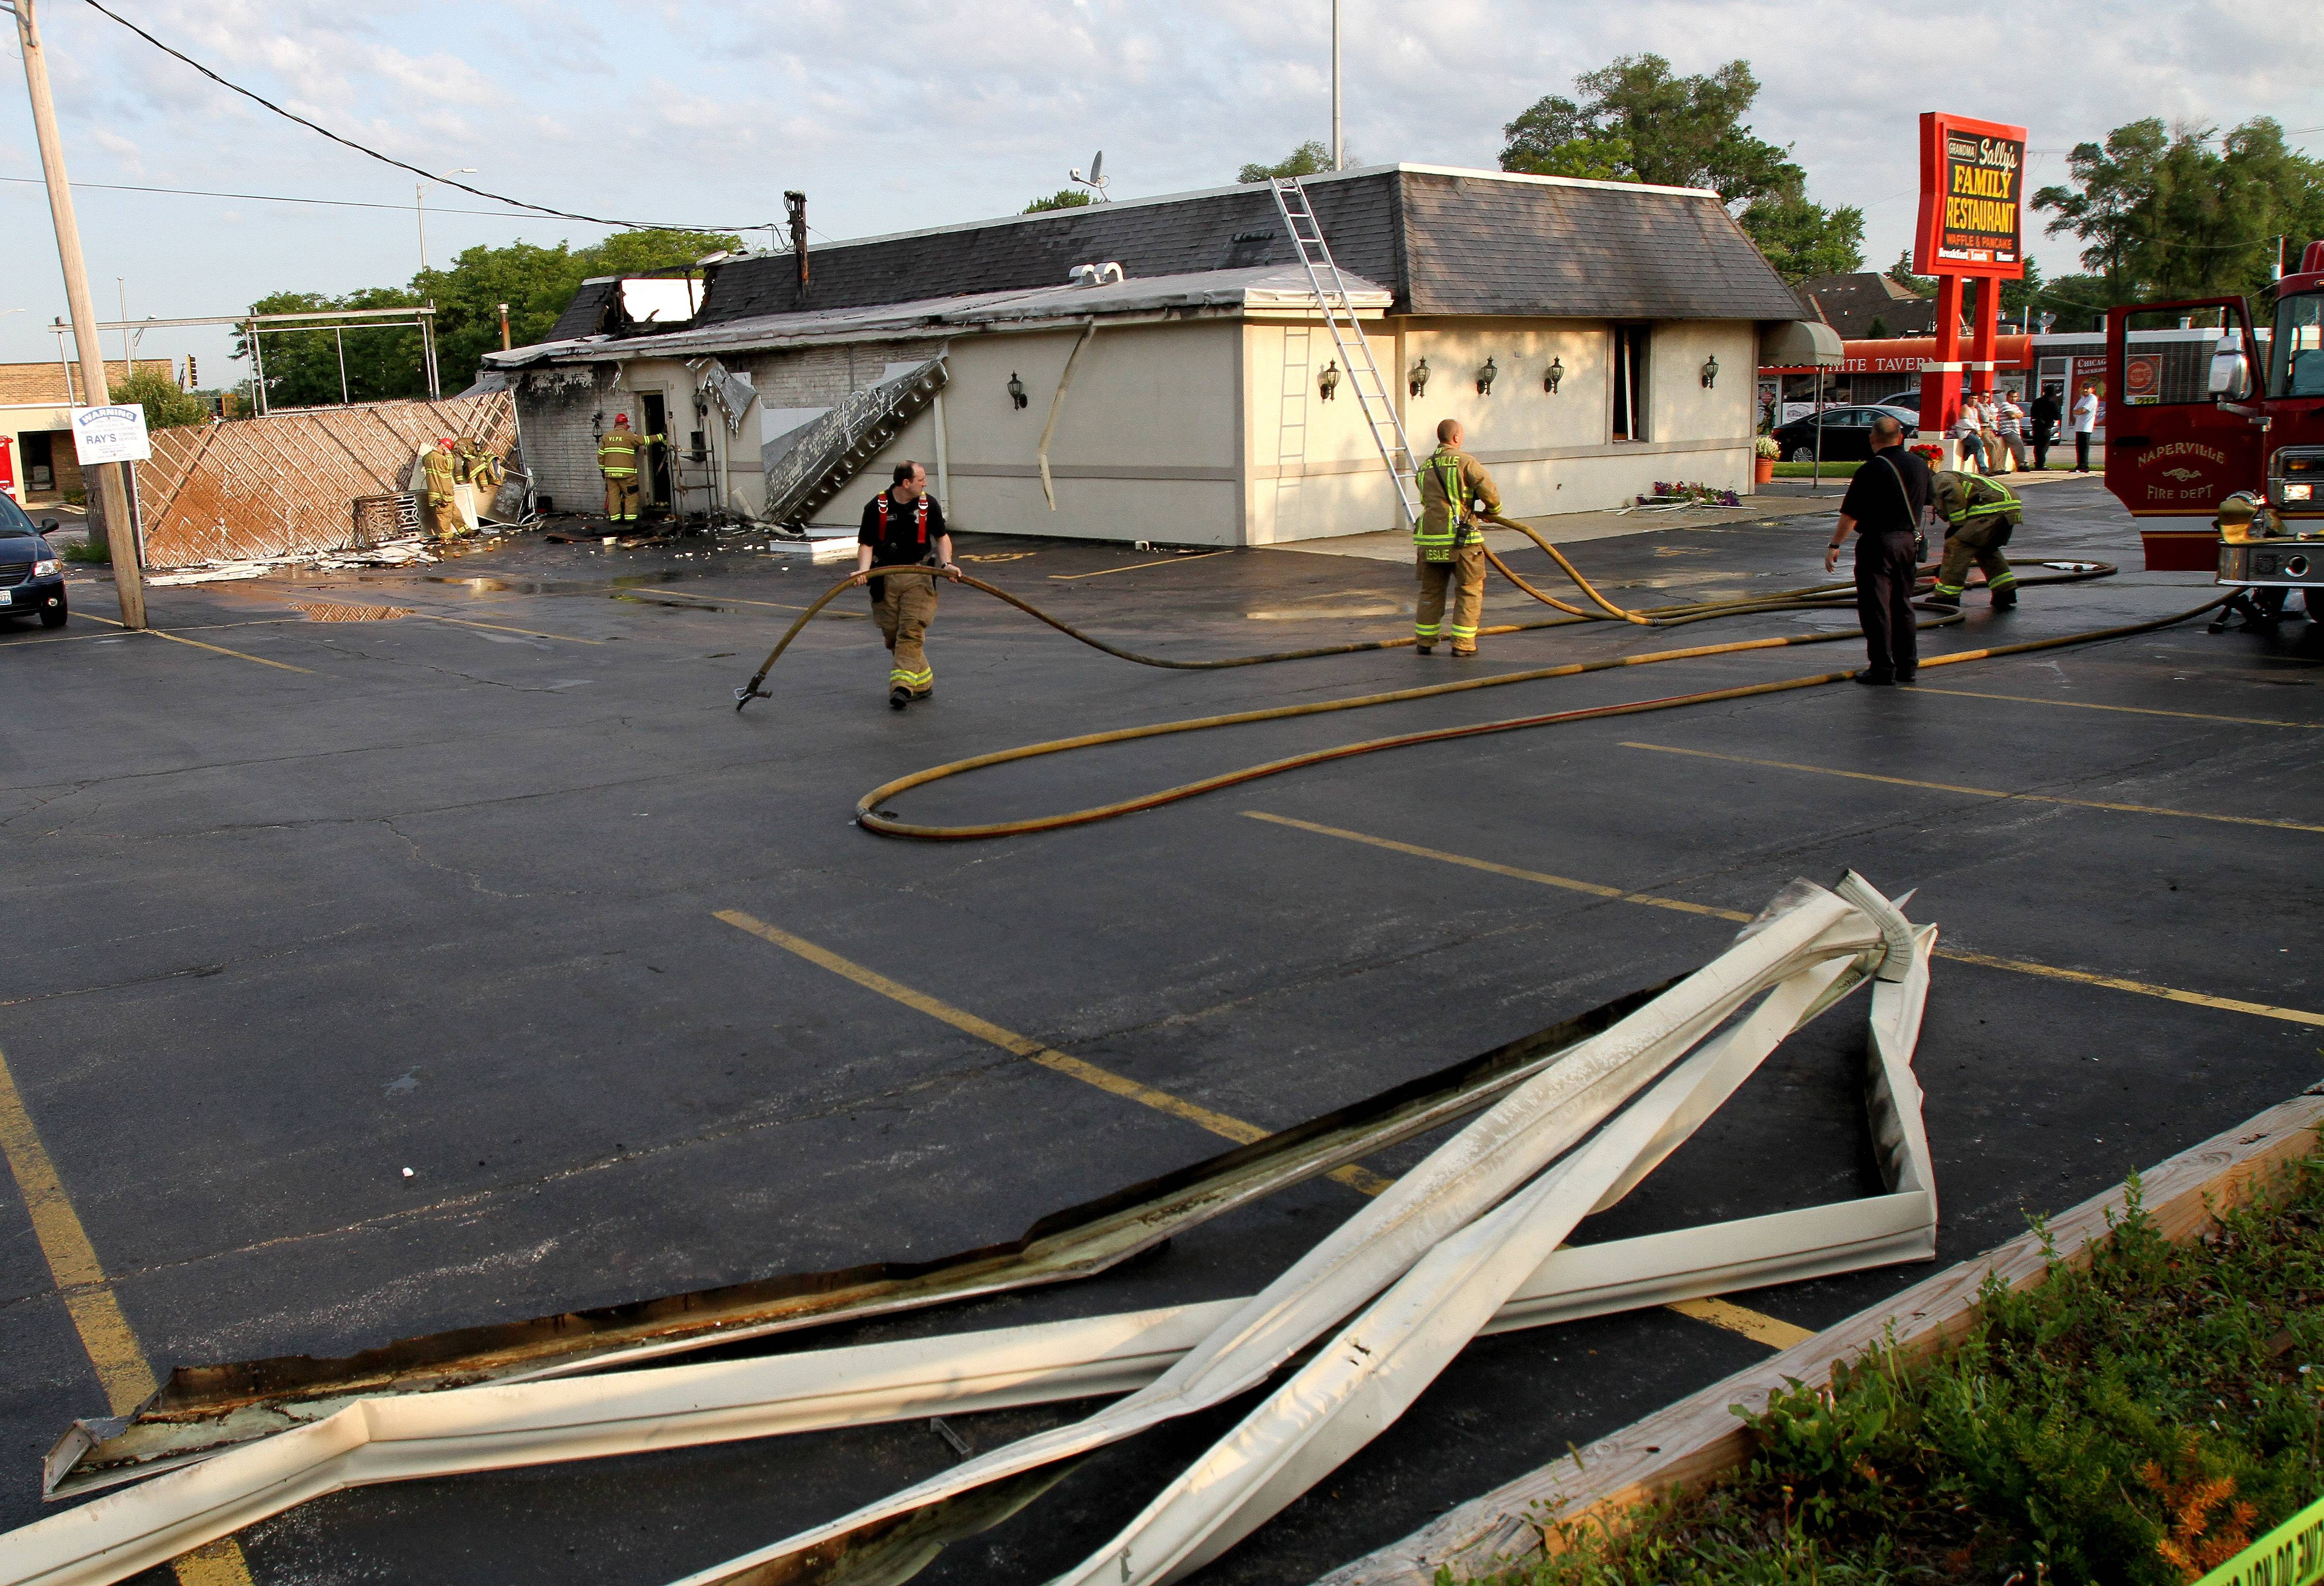 An early morning fire caused extensive damage Friday to Grandma Sally's Family Restaurant on Ogden Avenue in Naperville. Authorities estimated the damage near $400,000.